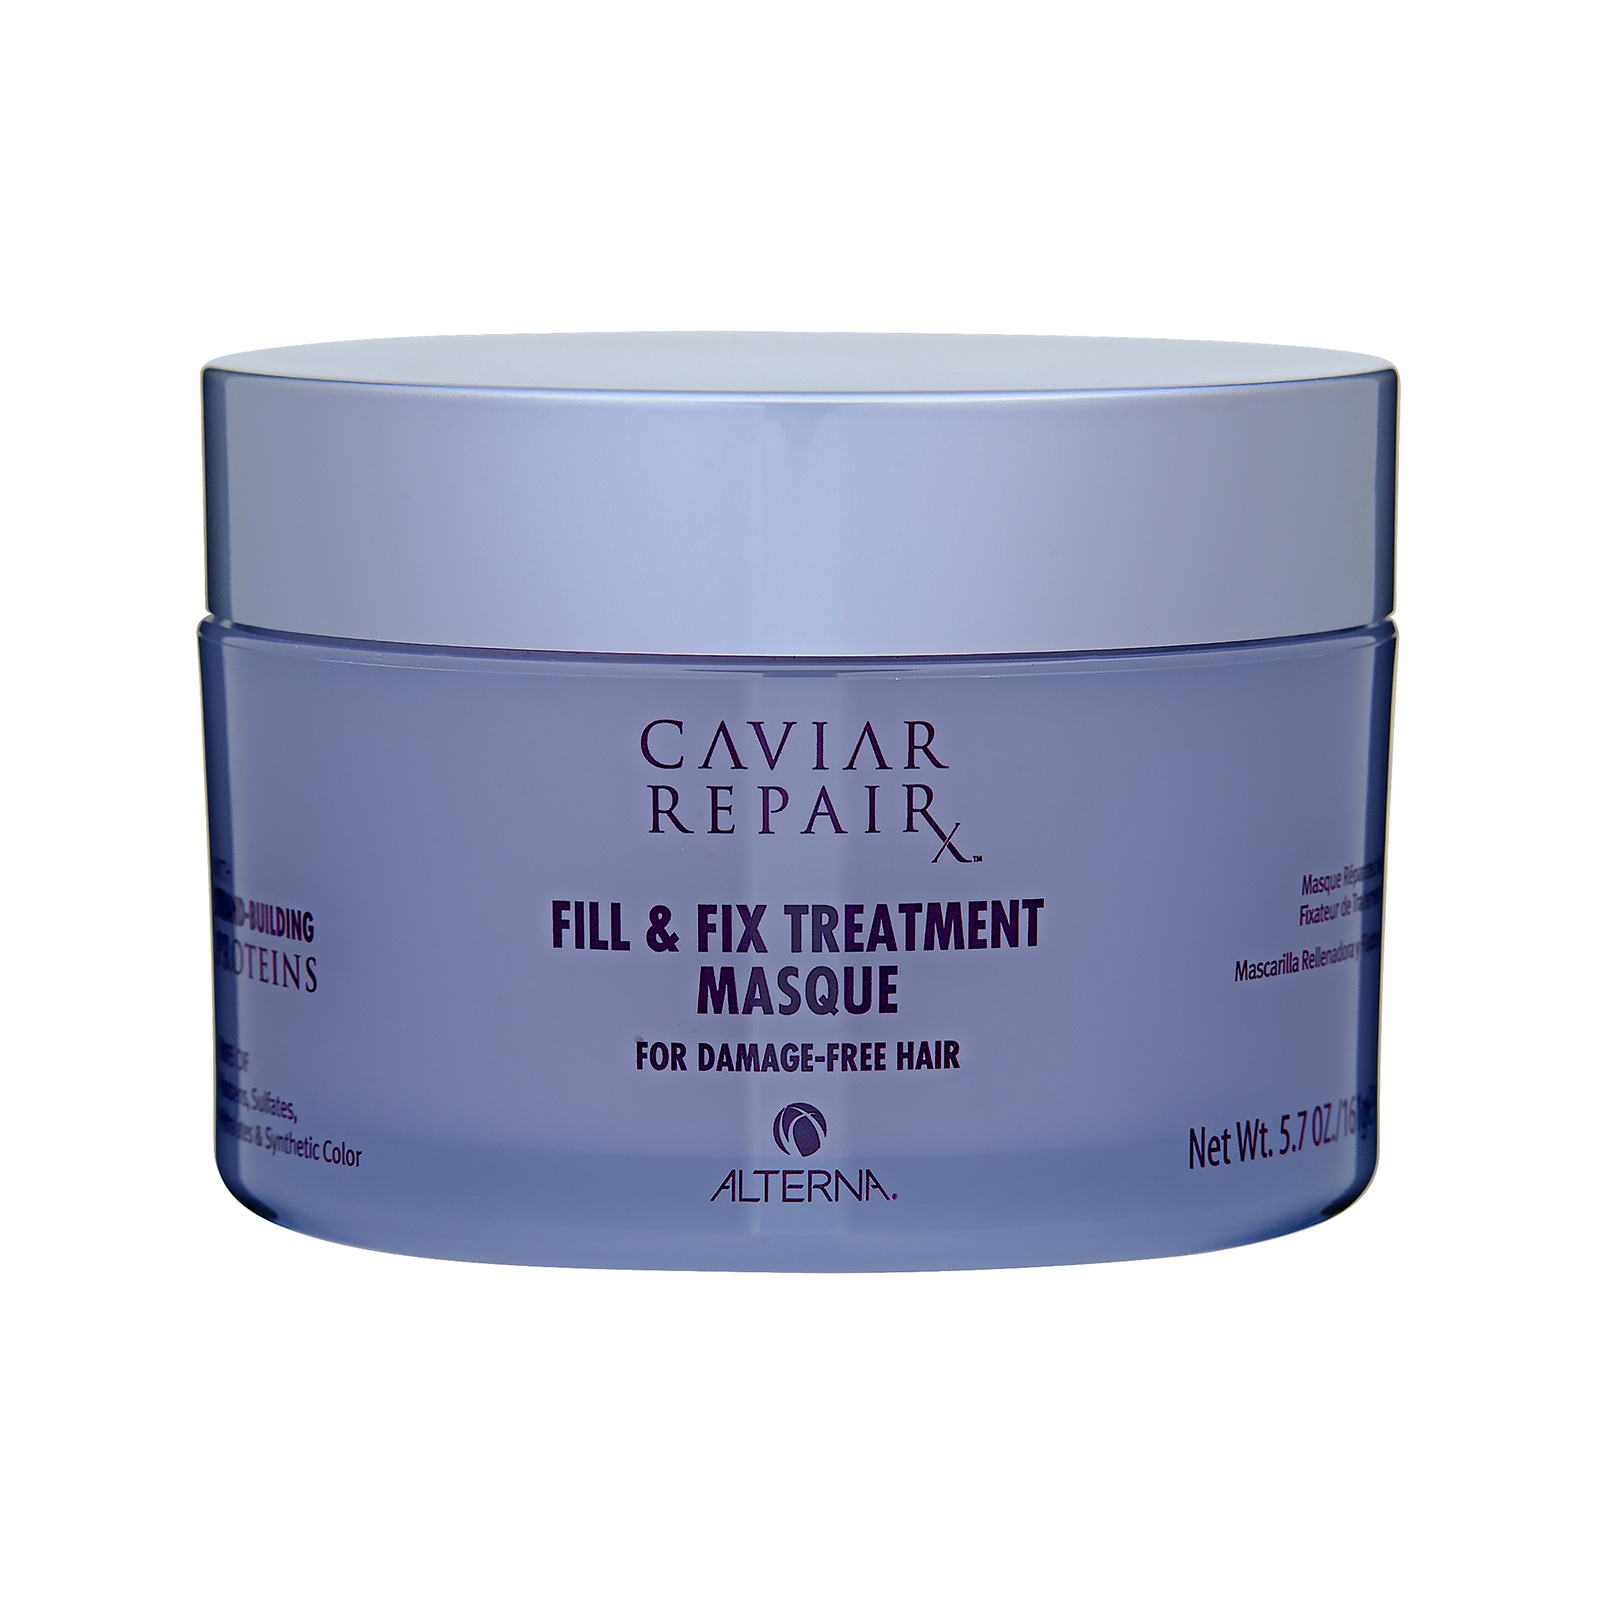 Alterna Haircare Caviar Repairx Fill & Fix Treatment Masque For Damage-Free Hair 5.7oz, 161g